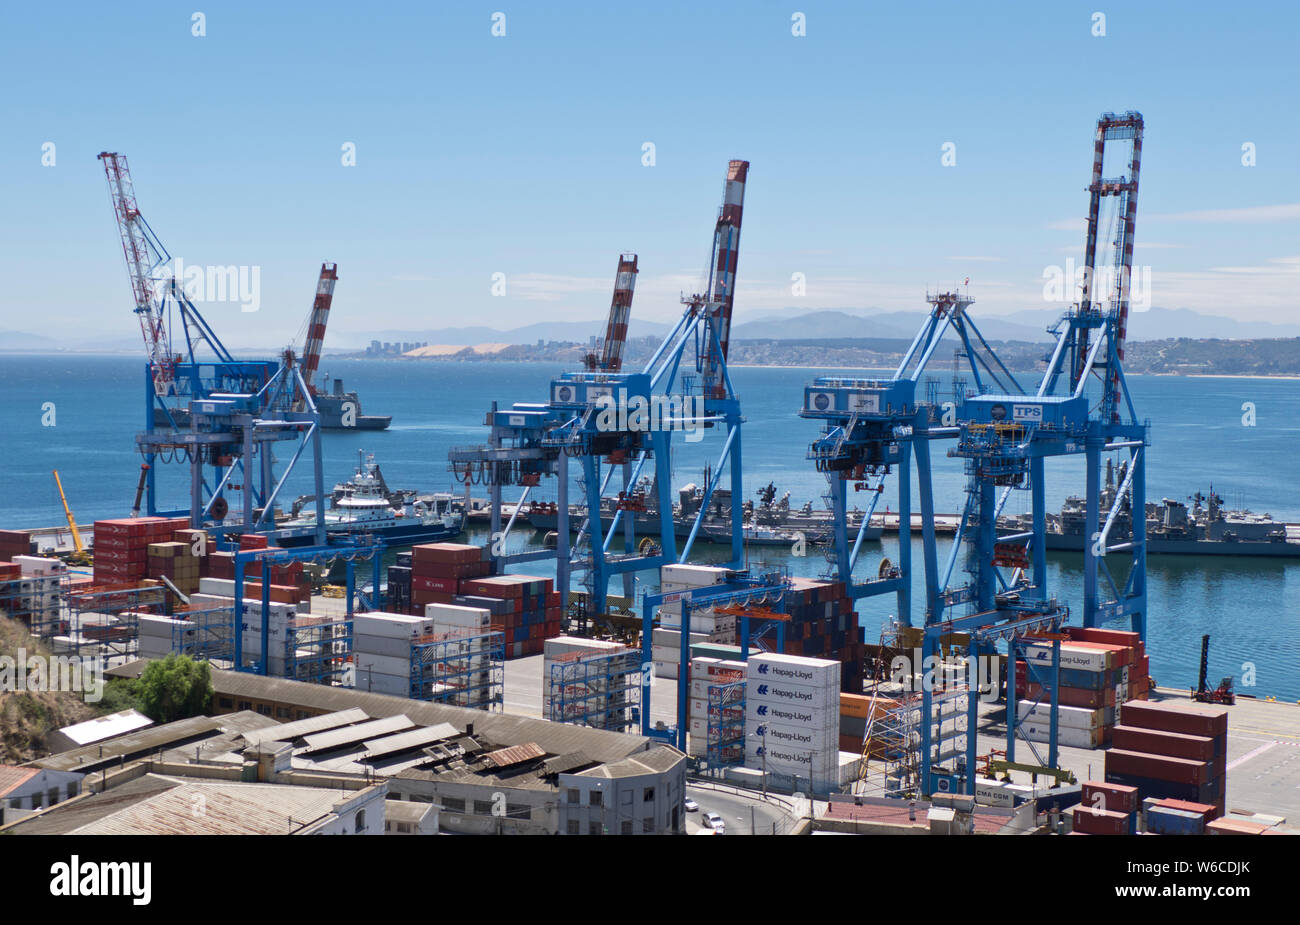 Container port at the harbour in Valparaiso, Chile Stock Photo